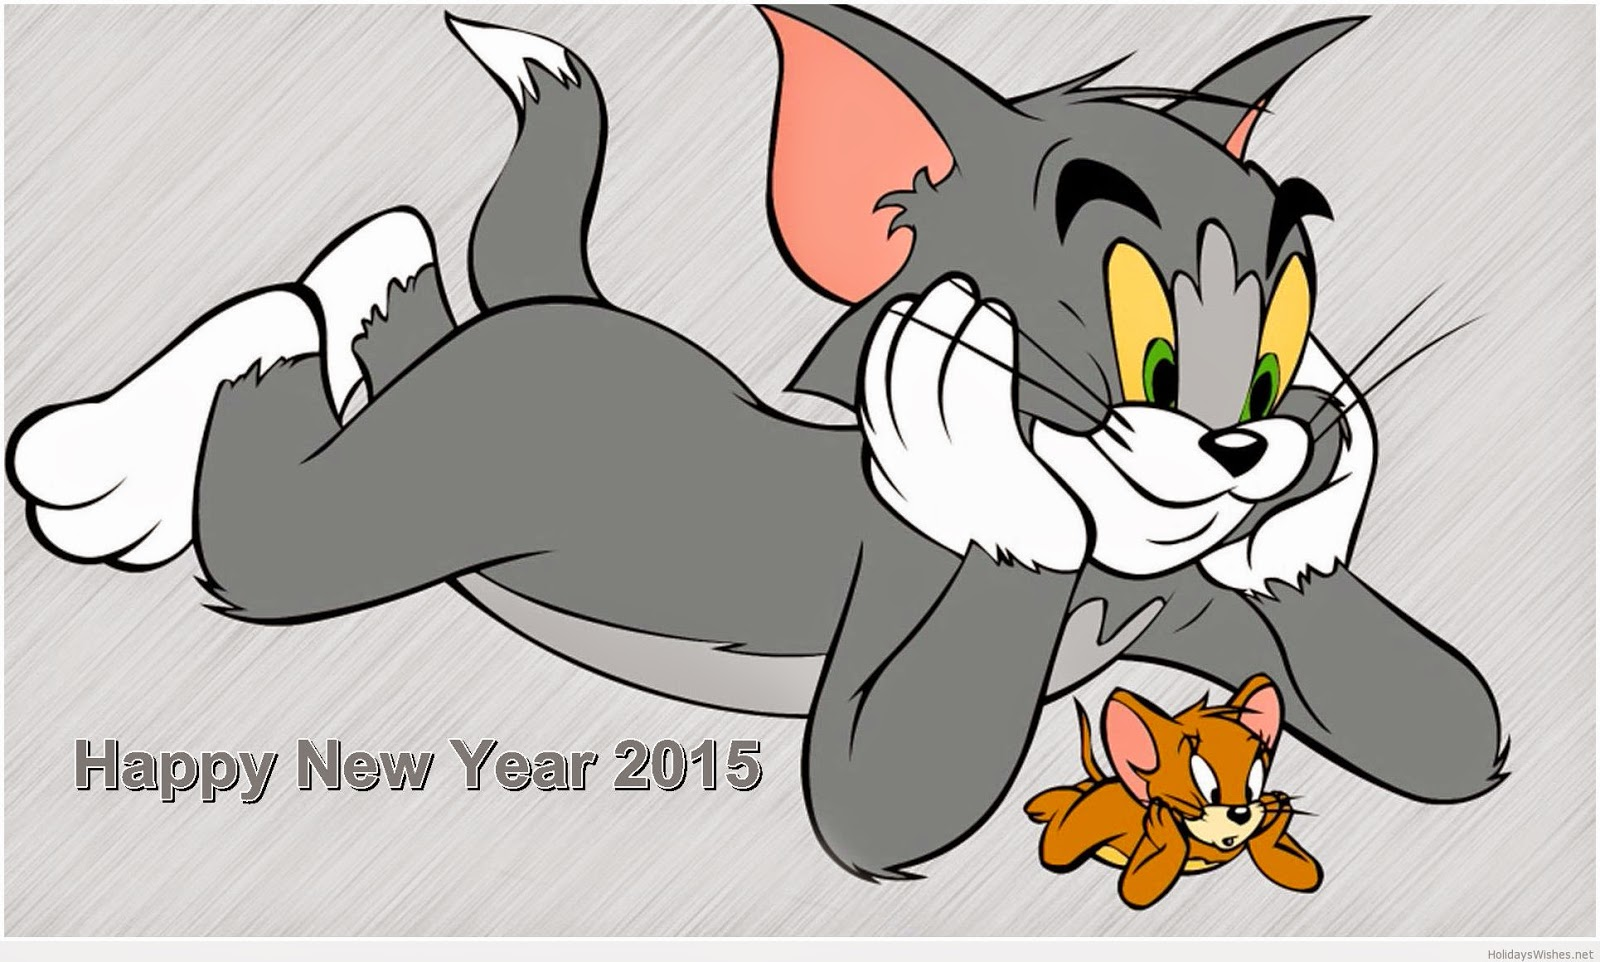 Happy New Year Tom & Jerry Wallpaper 2016